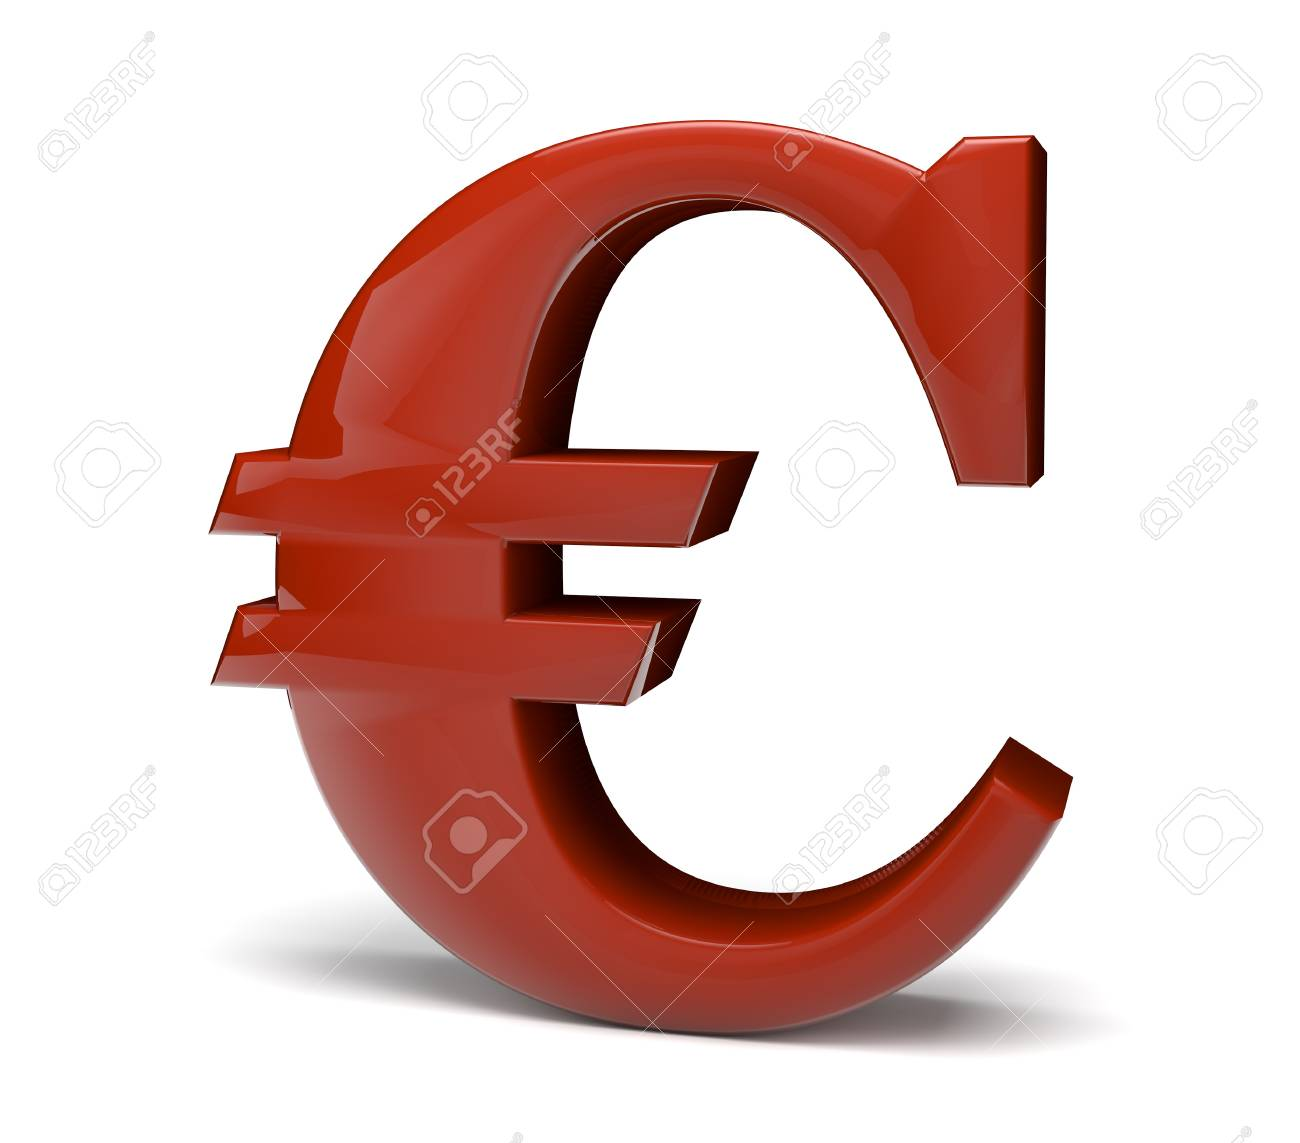 3d Render Of The Euro Symbol Stock Photo Picture And Royalty Free